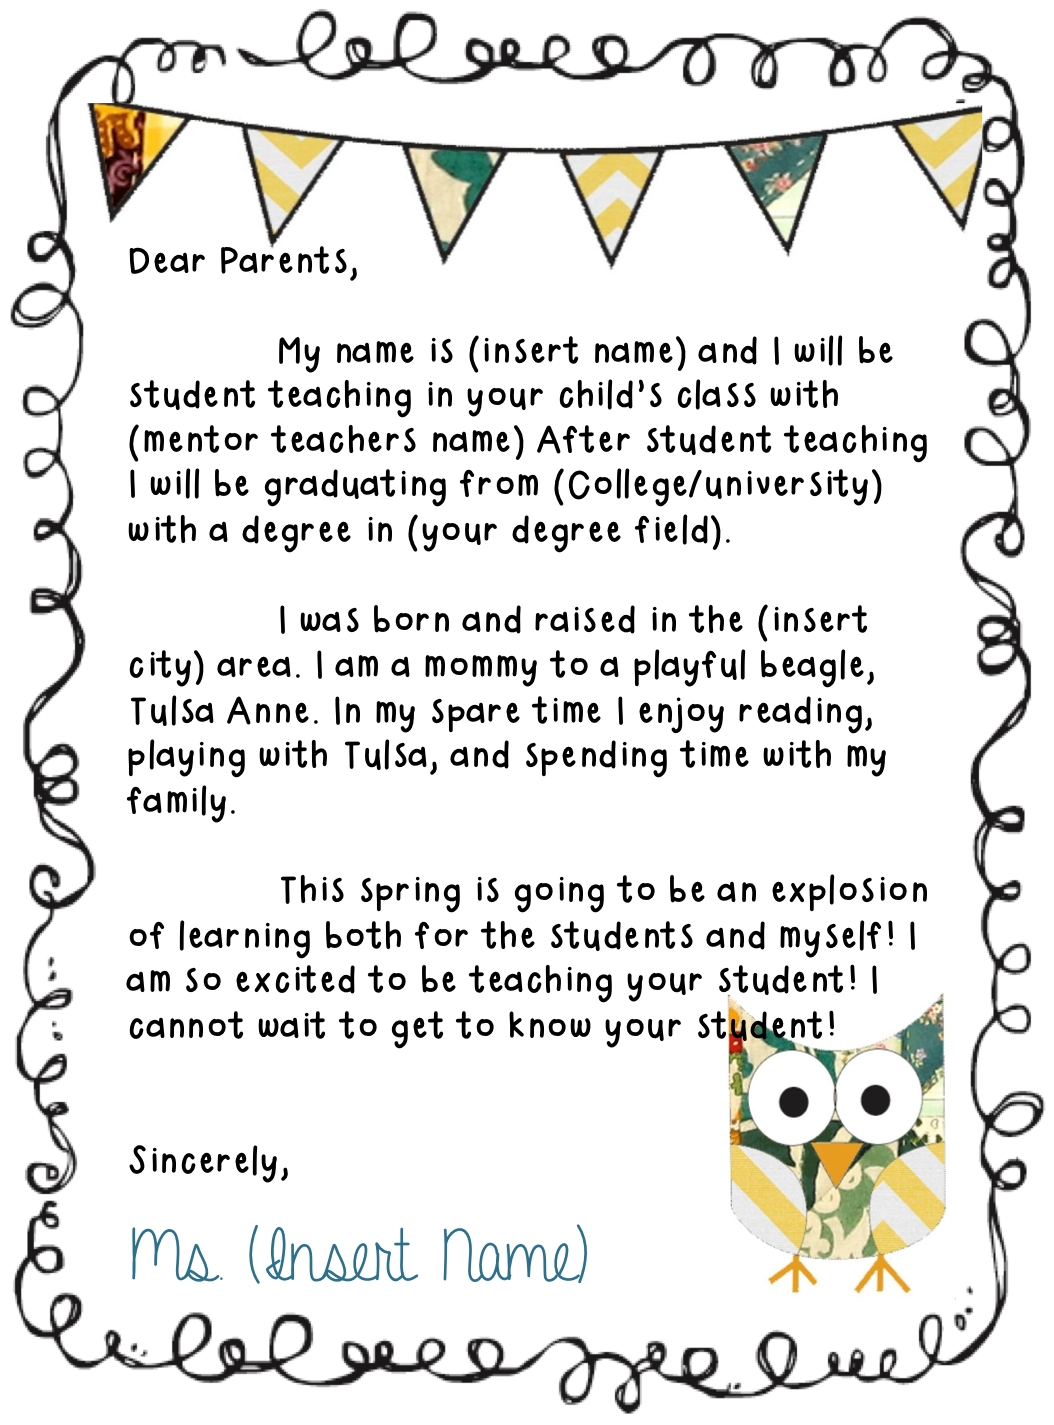 Student Teaching Resume Needing To Make A Letter To Send To Parents To Introduce Yourself